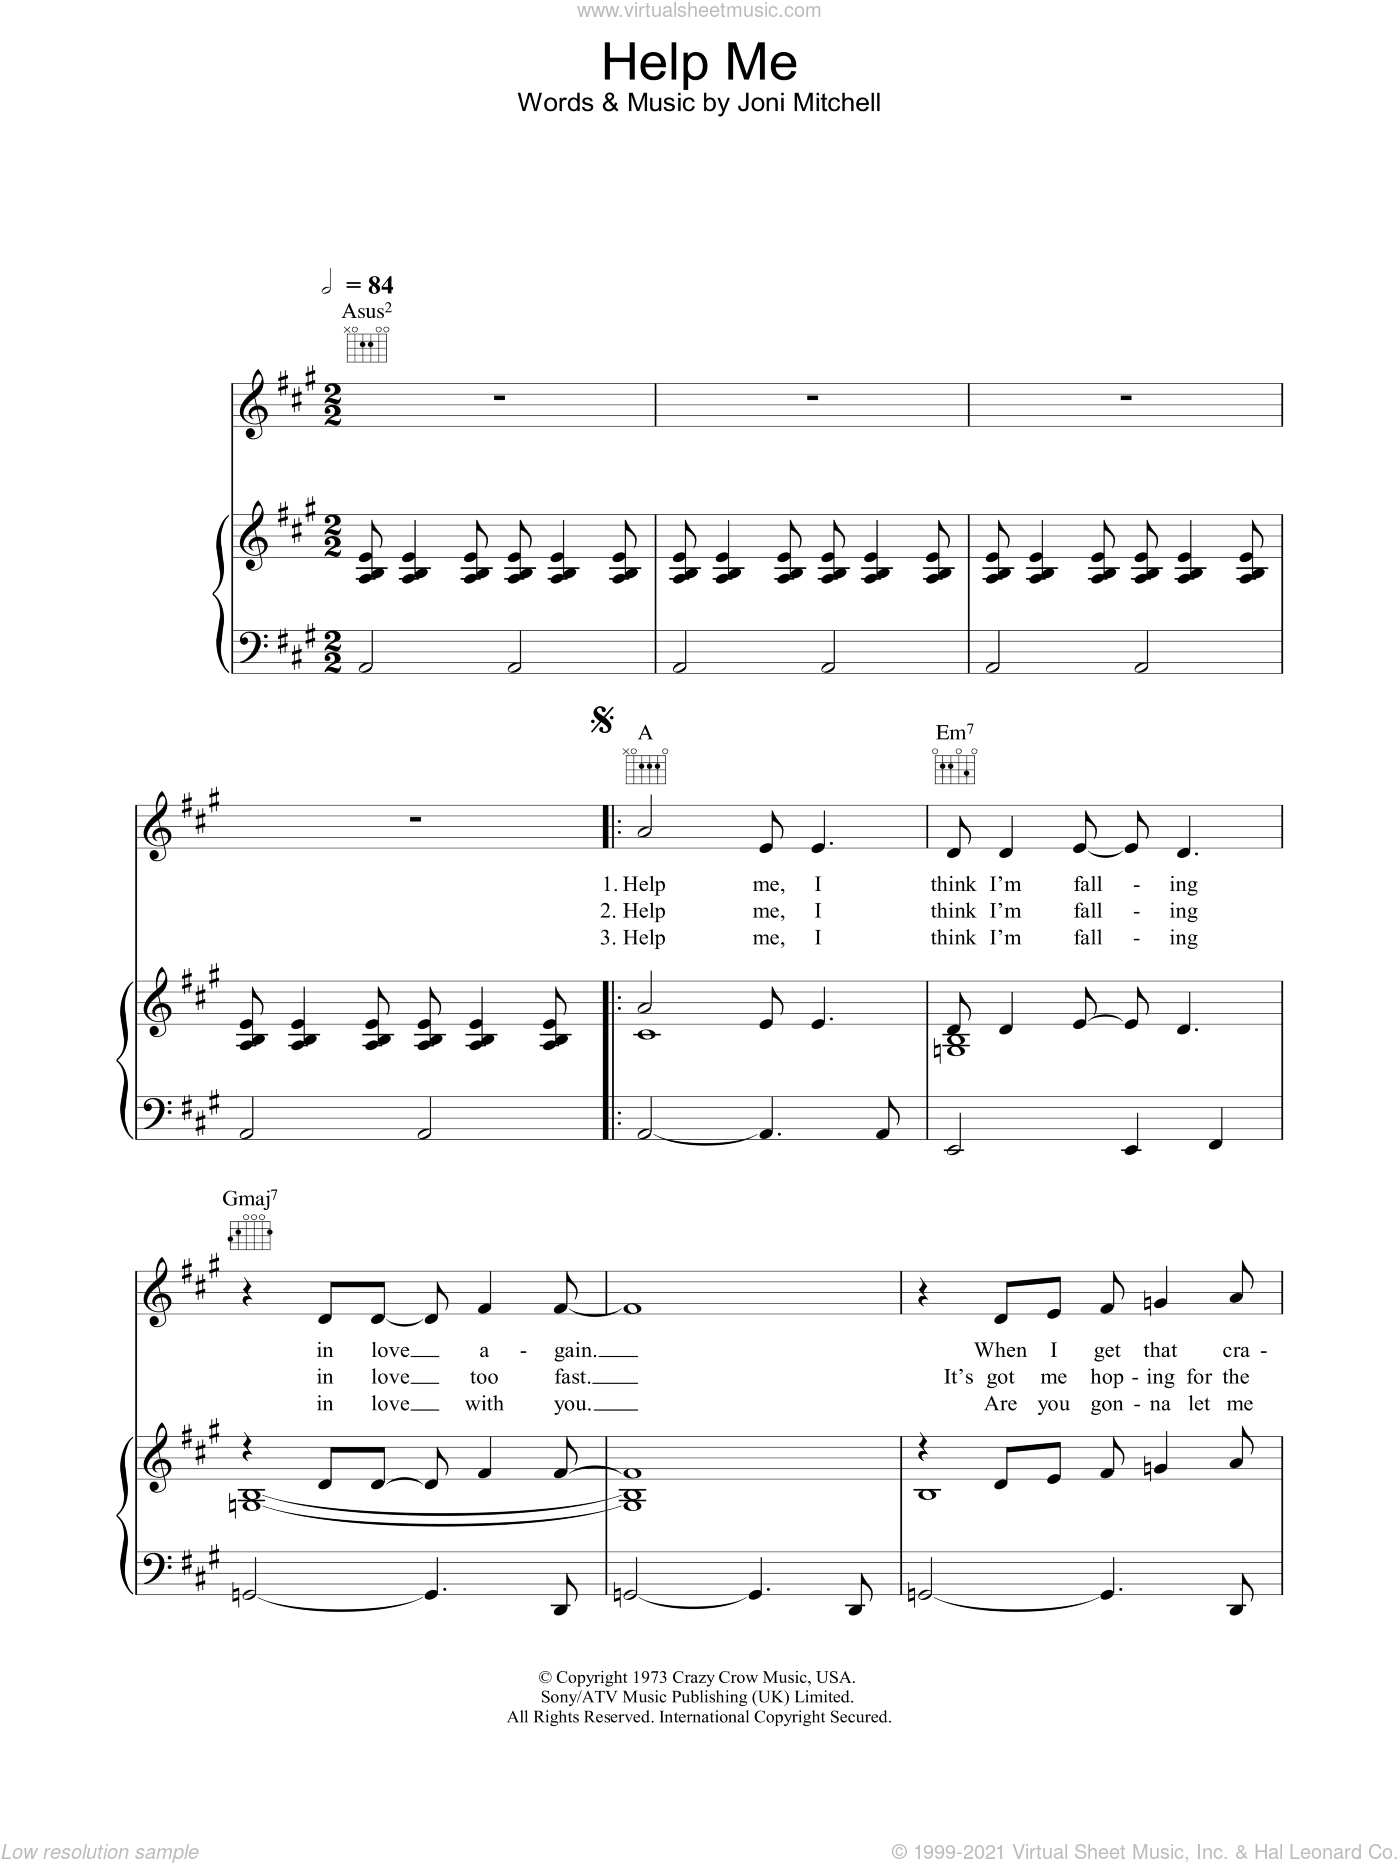 Help Me sheet music for voice, piano or guitar by Joni Mitchell